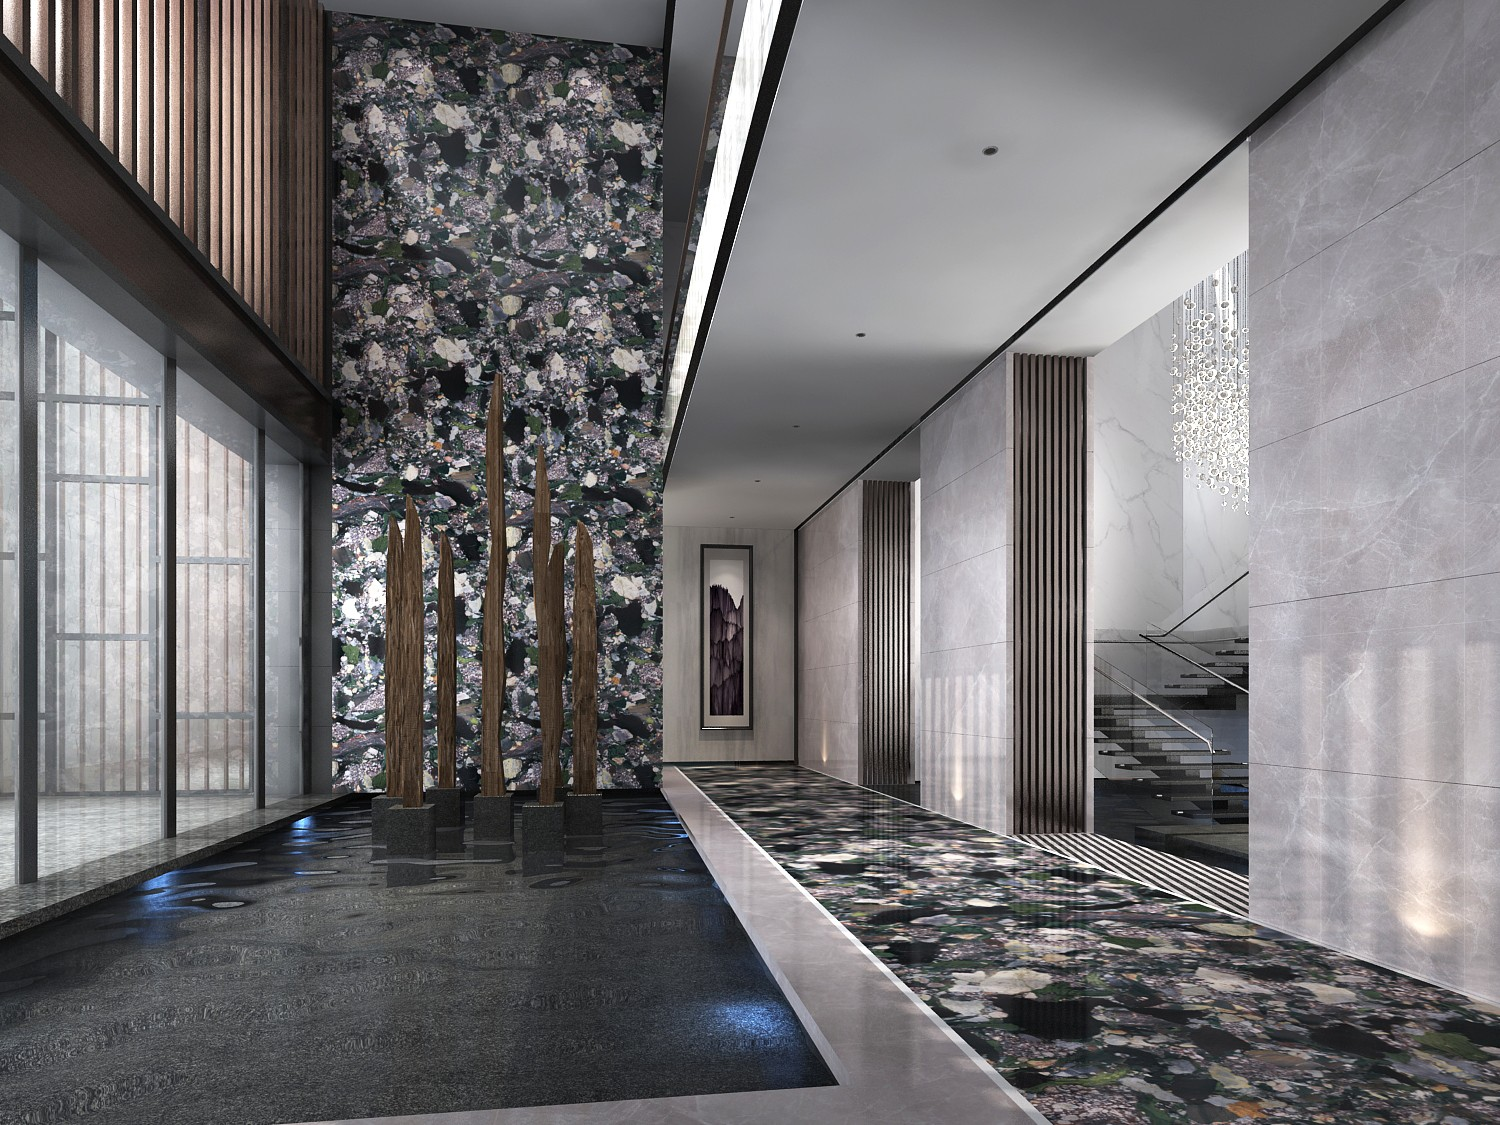 Four Seasons Green Marble Tiles Manufacturers, Four Seasons Green Marble Tiles Factory, Supply Four Seasons Green Marble Tiles